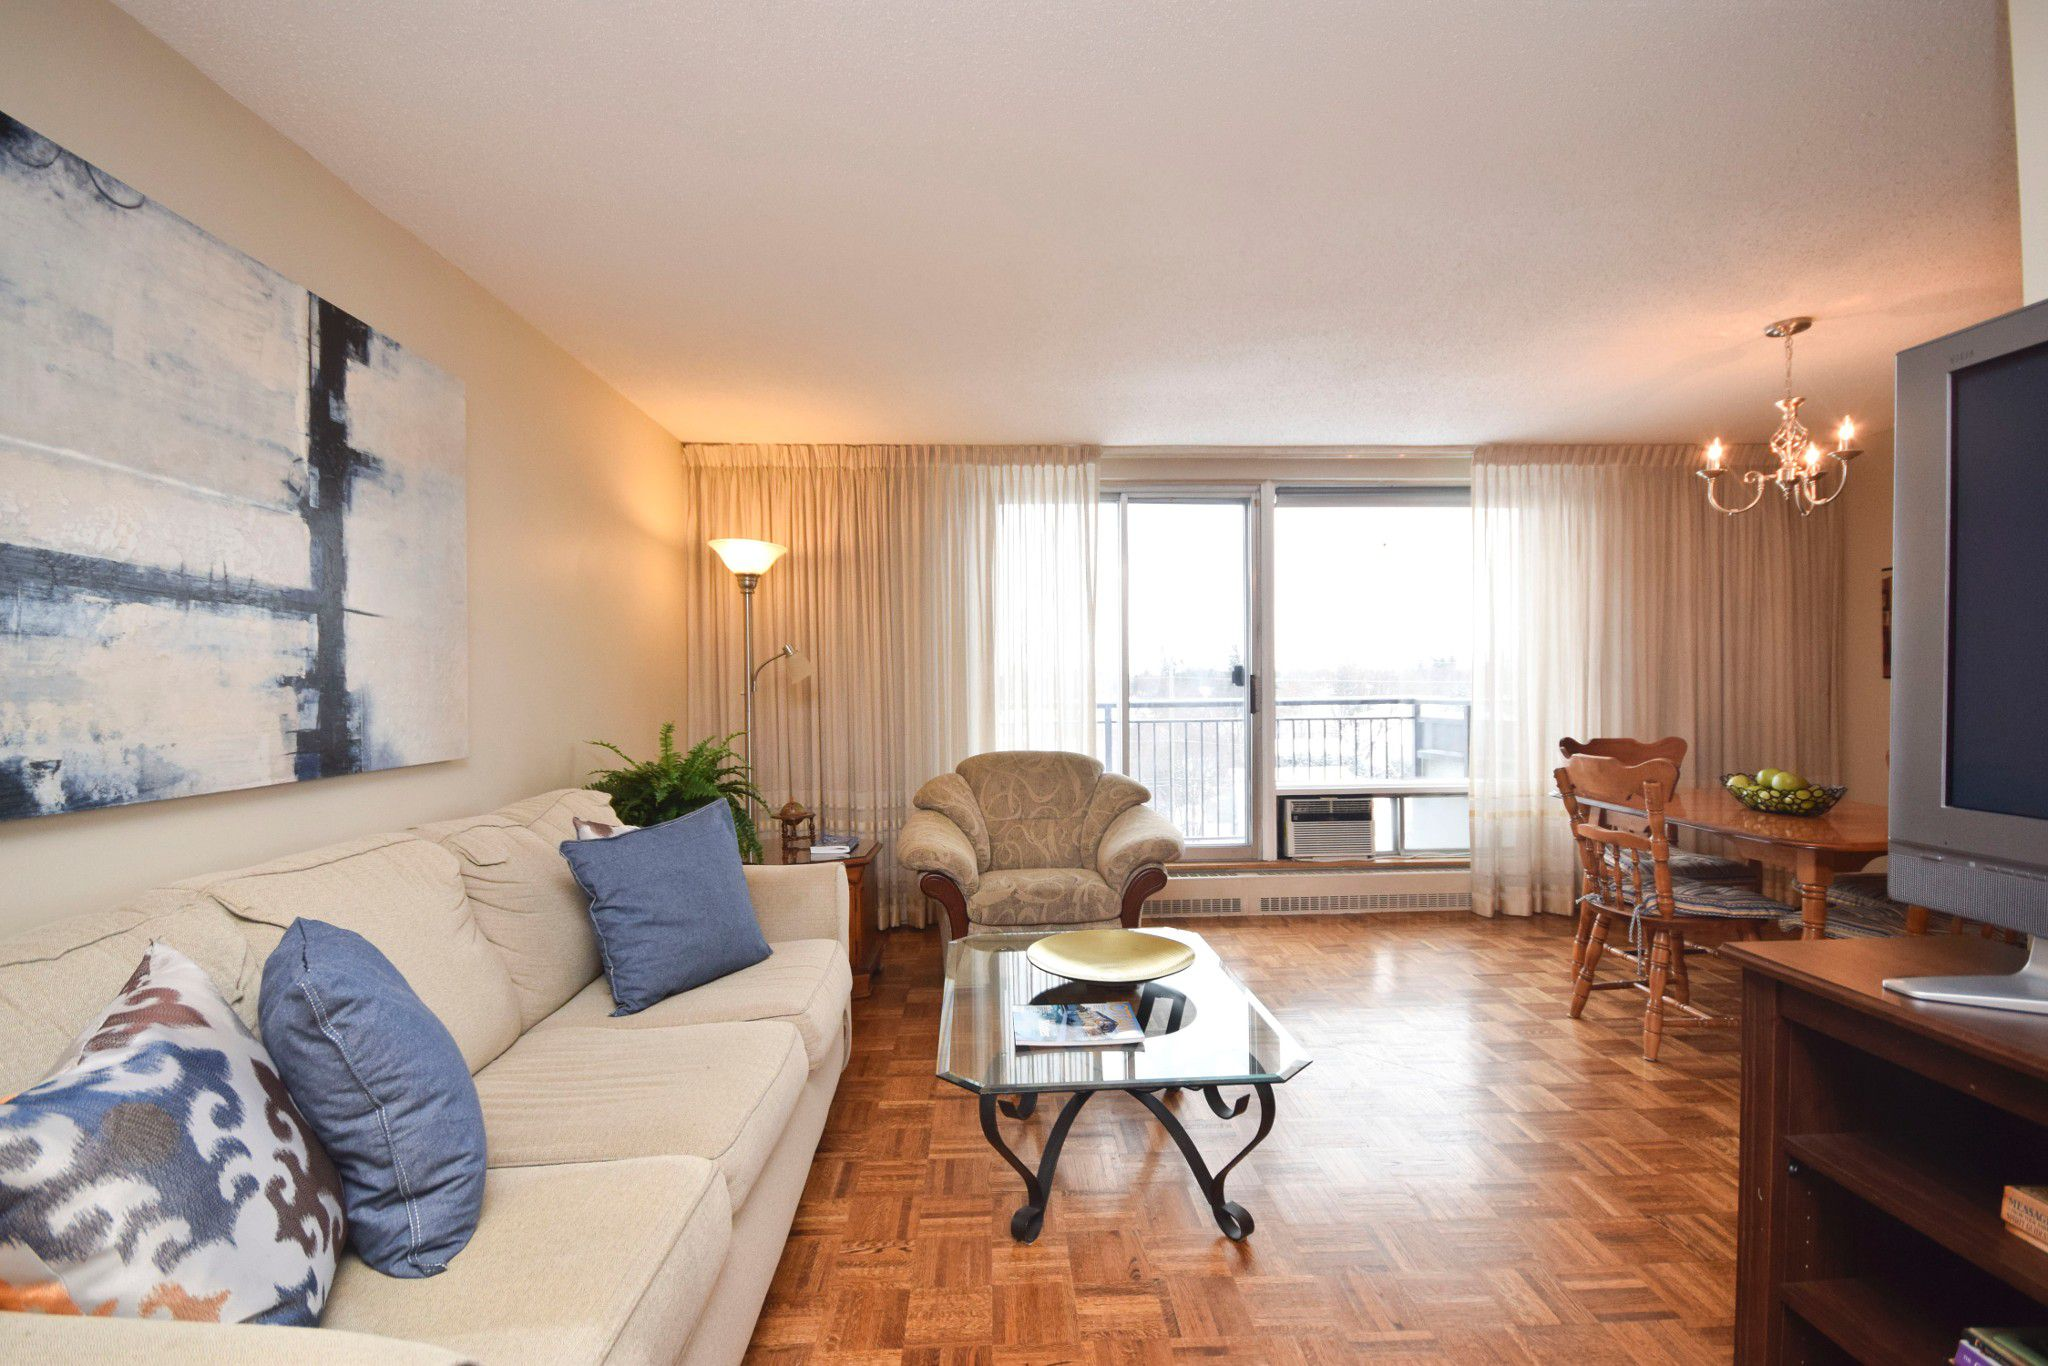 Photo 12: Photos: 515 1465 BASELINE Road in Ottawa: Copeland Park House for sale : MLS®# 1133550